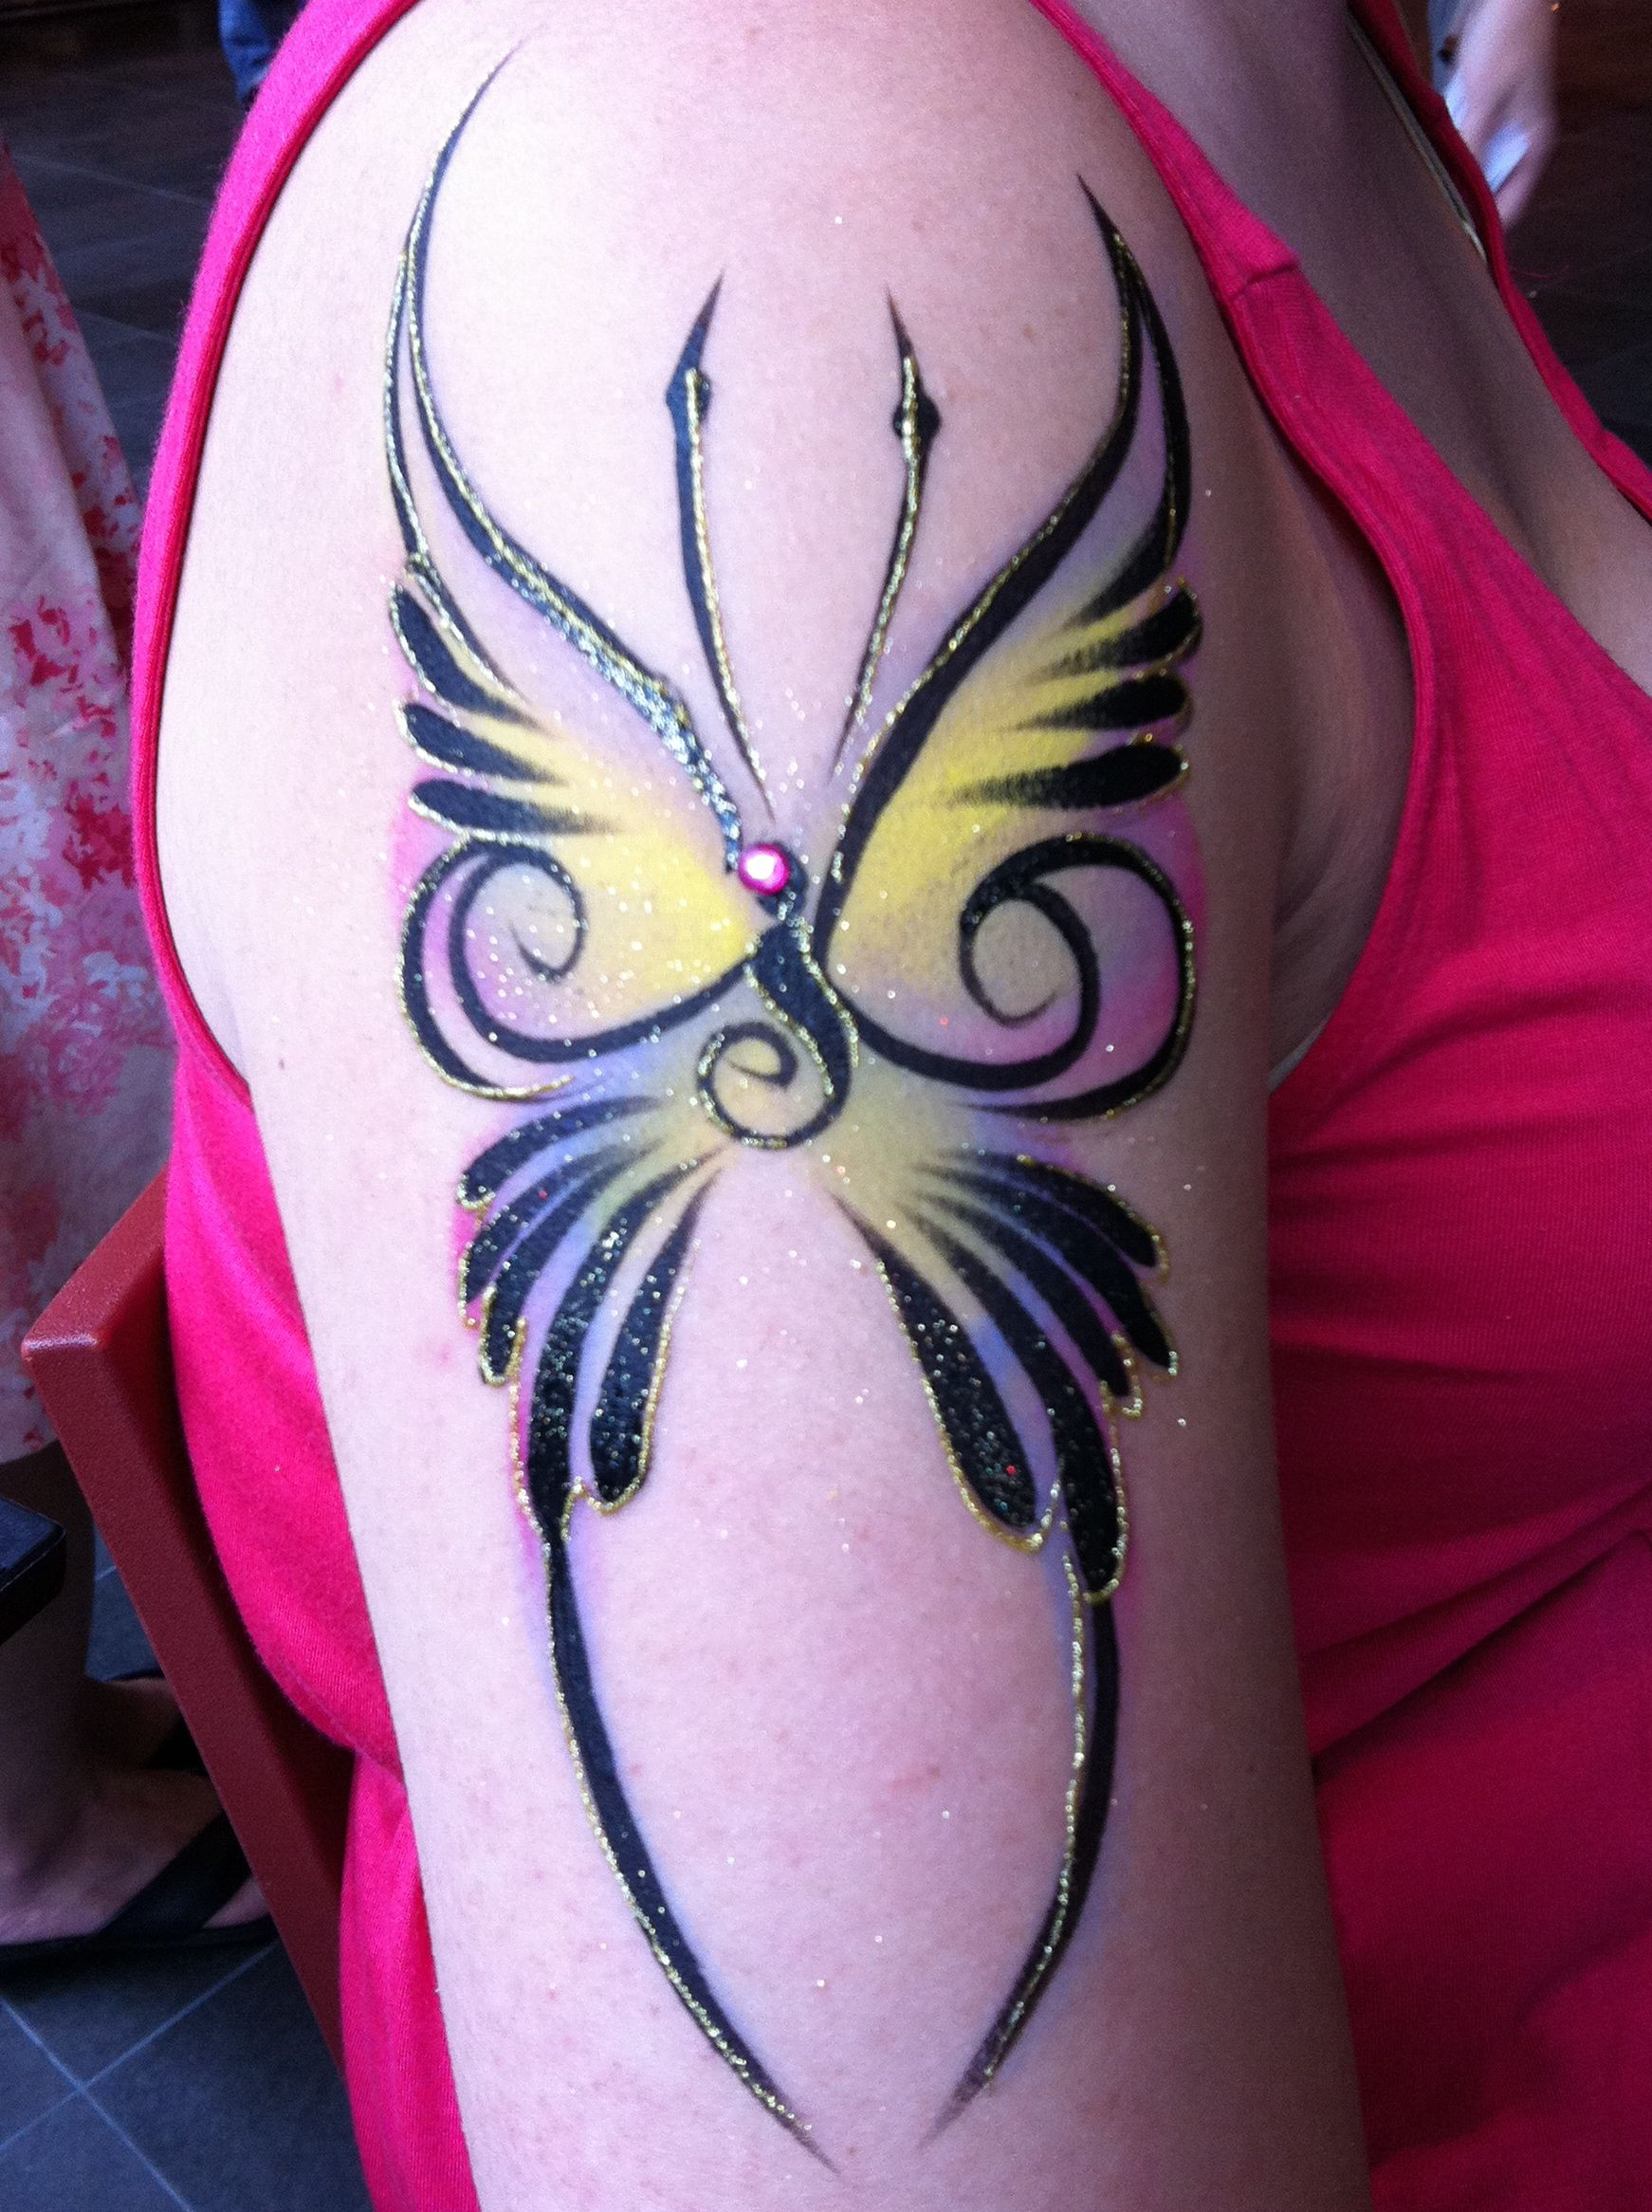 Cool butterfly face painting design...kindof tribal | Inspiring ... for Butterfly Painting Designs  58lpg